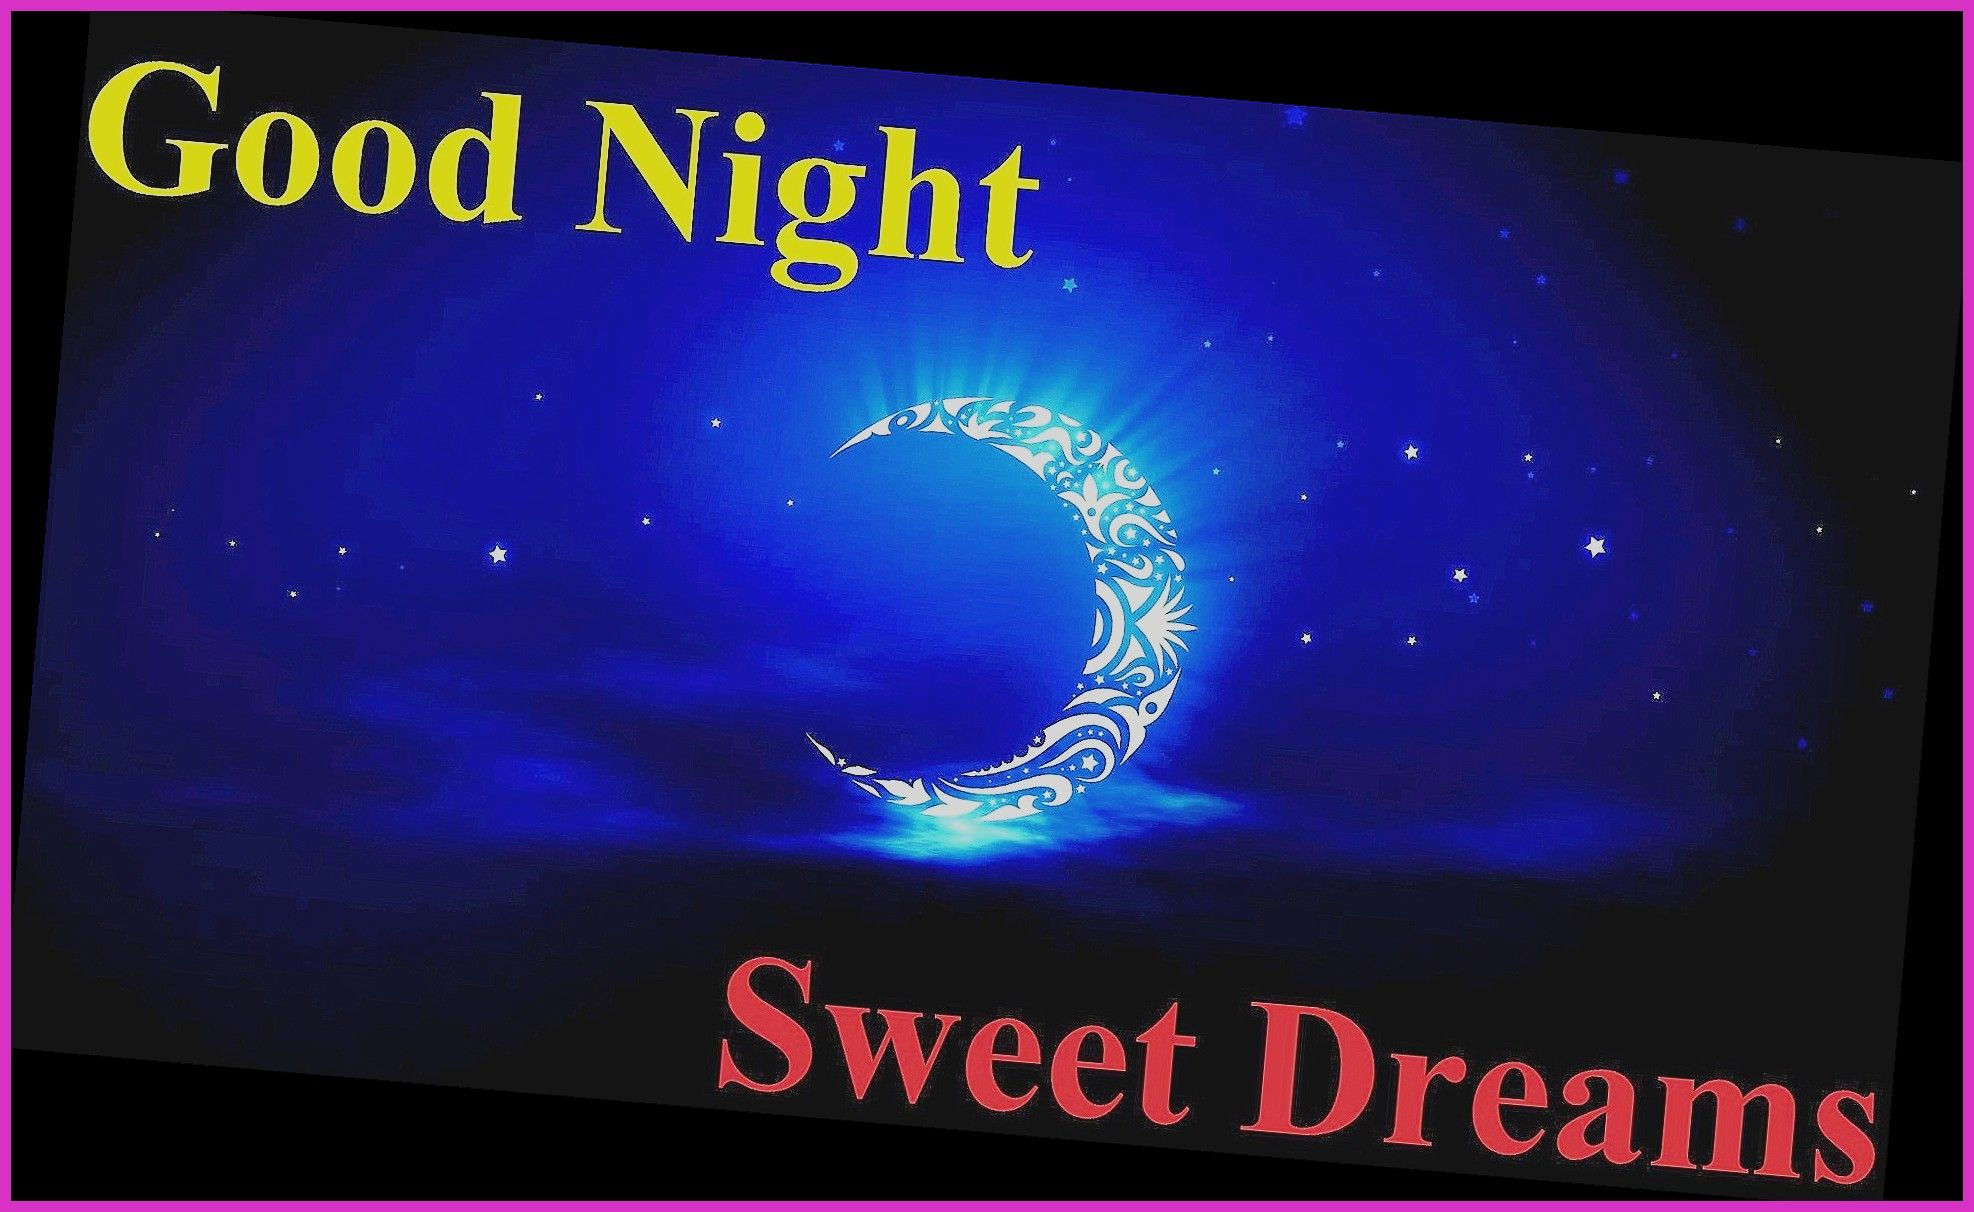 Download Free Good Night Sweet Dreams Wallpapers For Whats App On Isaidyeshub Com Good Night Wallpaper Good Night Images Hd Good Night Photos Hd